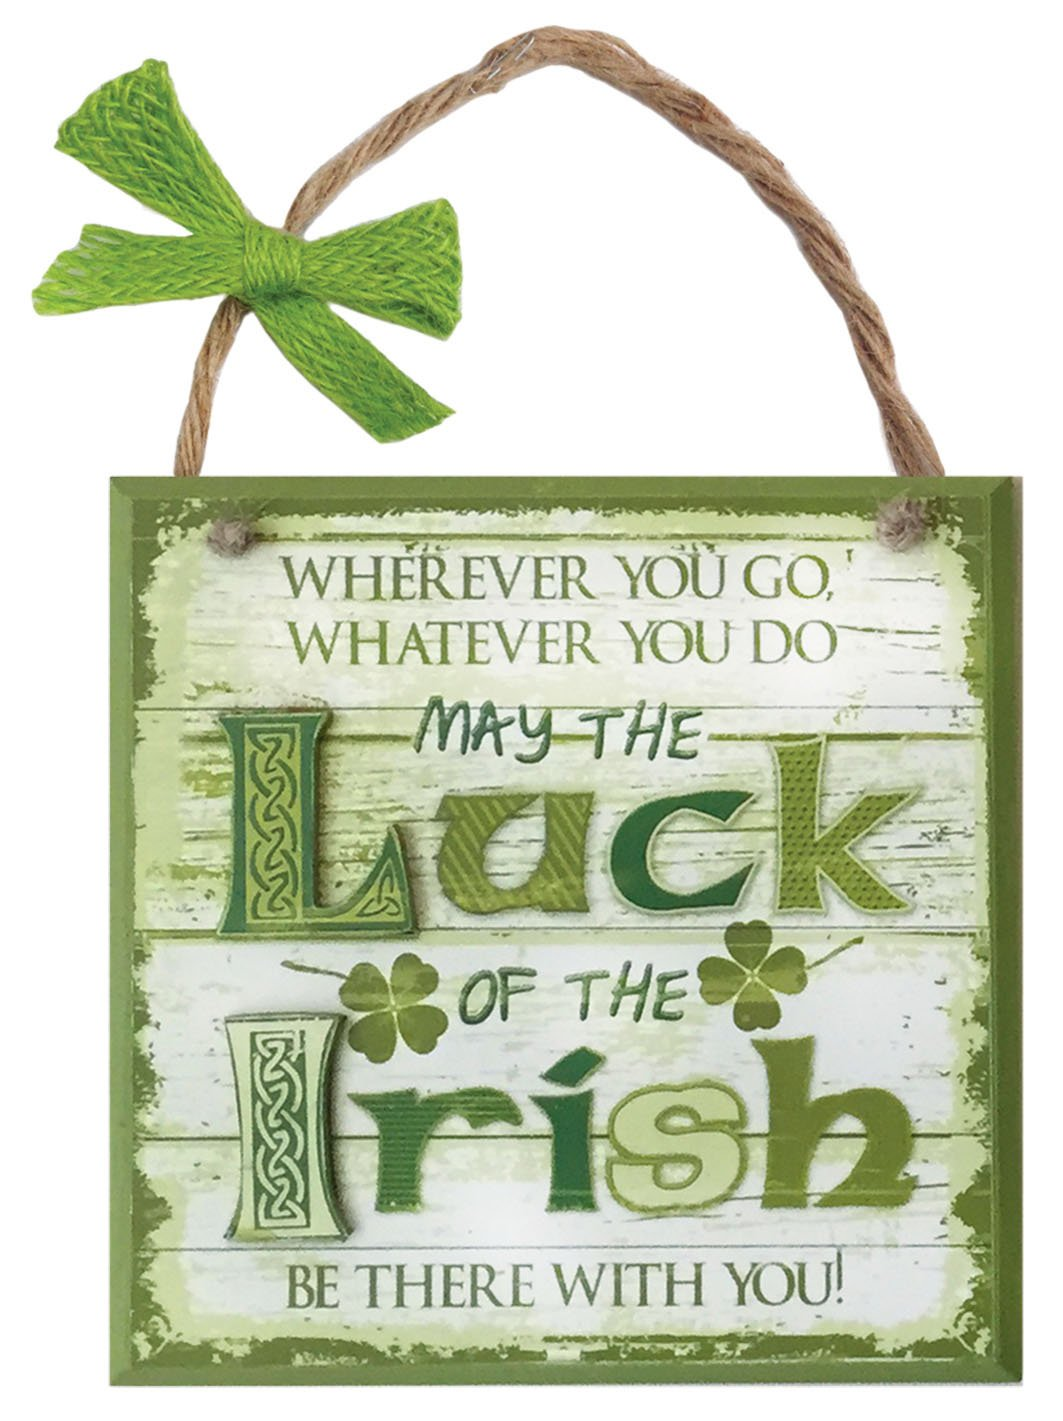 Carrolls Irish Gifts Rustic Ireland 'May The Luck Of The Irish Be There With You' Wooden Plaque